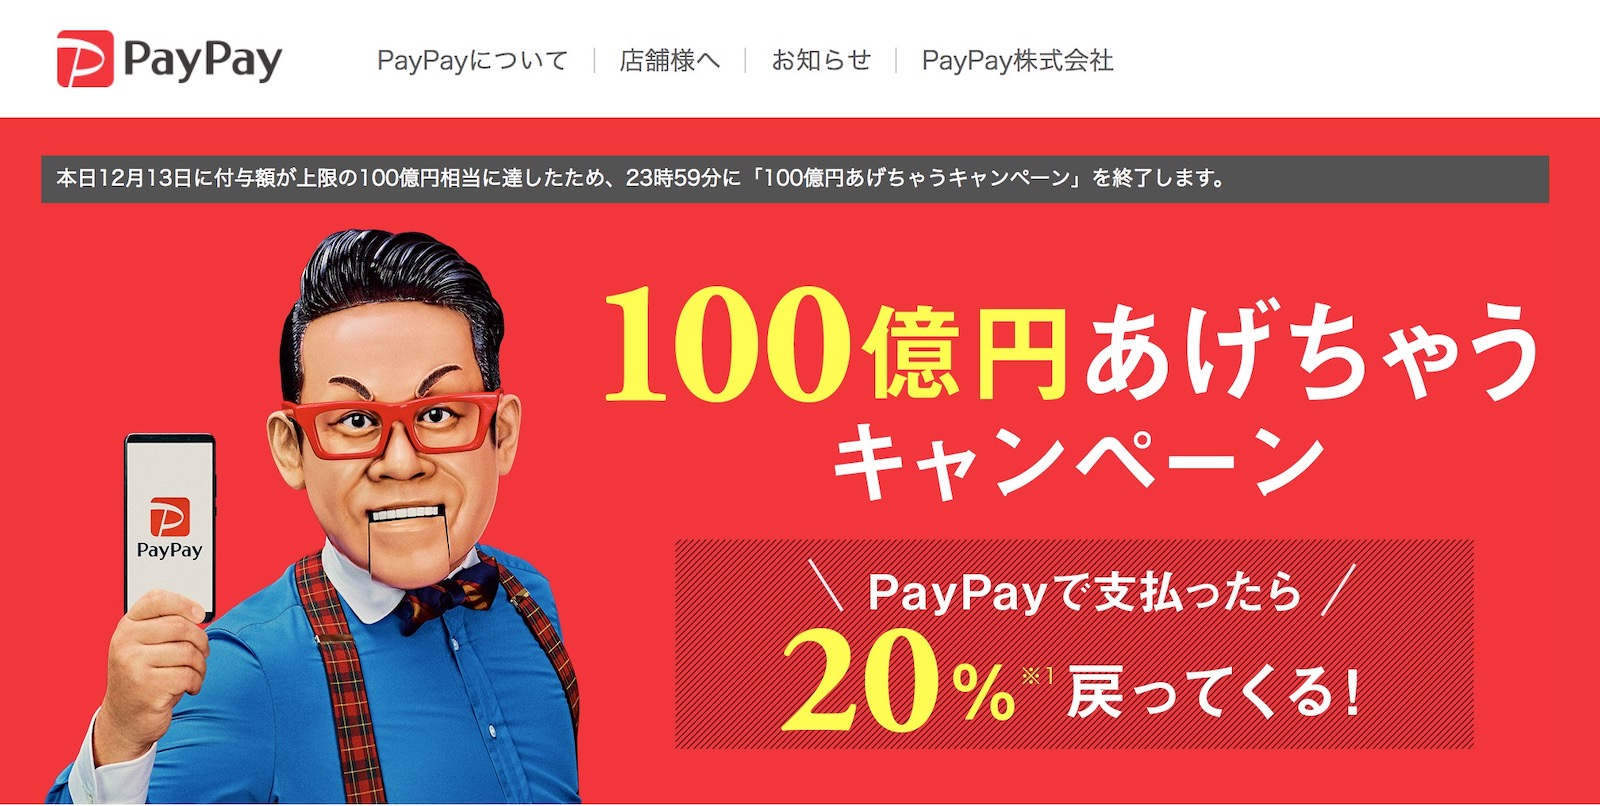 PayPay Campaign End